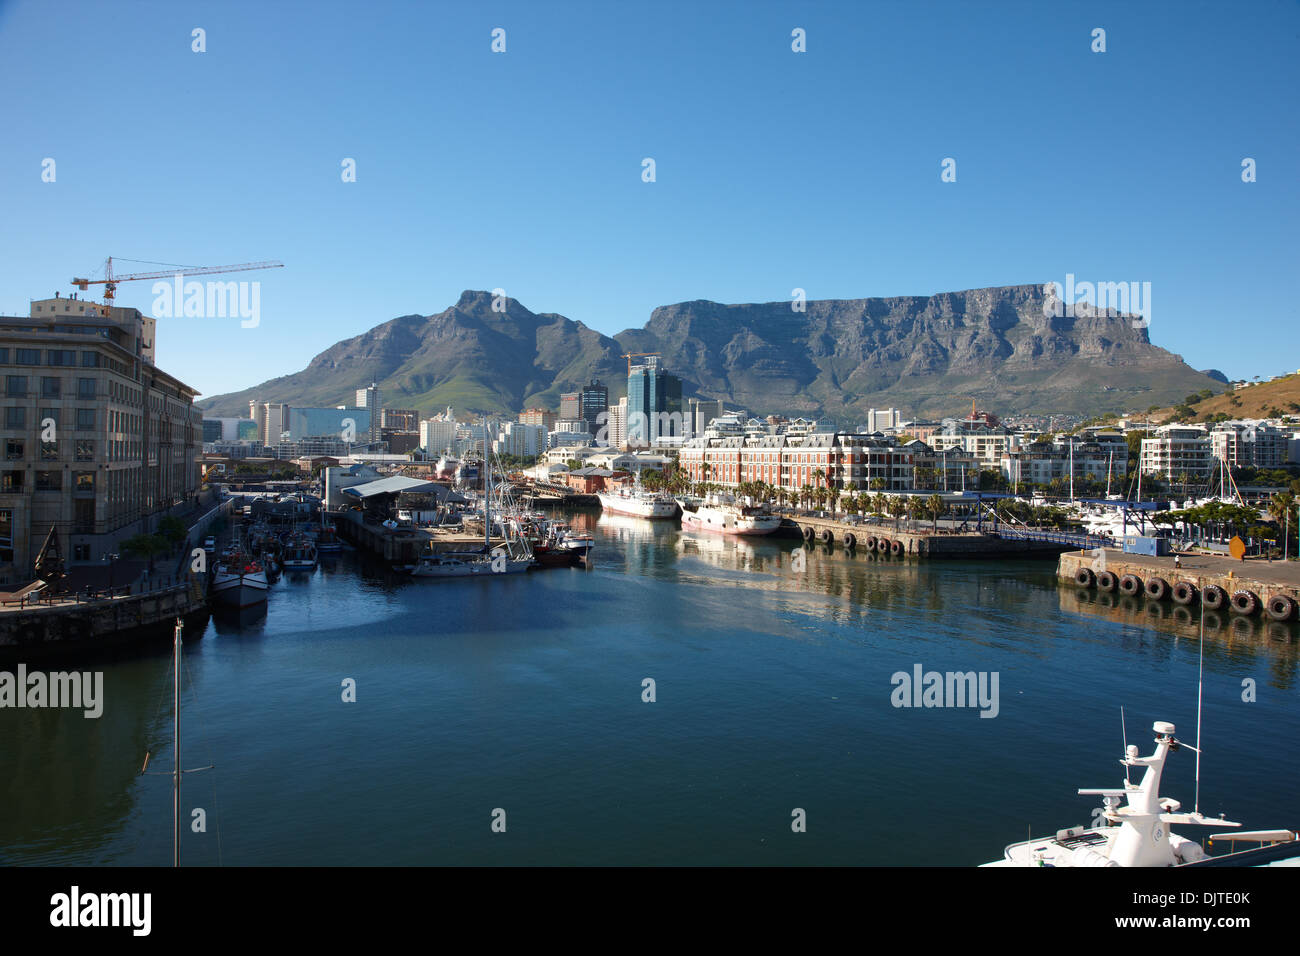 View of Table Mountain from The Victoria & Alfred (V&A) Waterfront in Cape Town - Stock Image